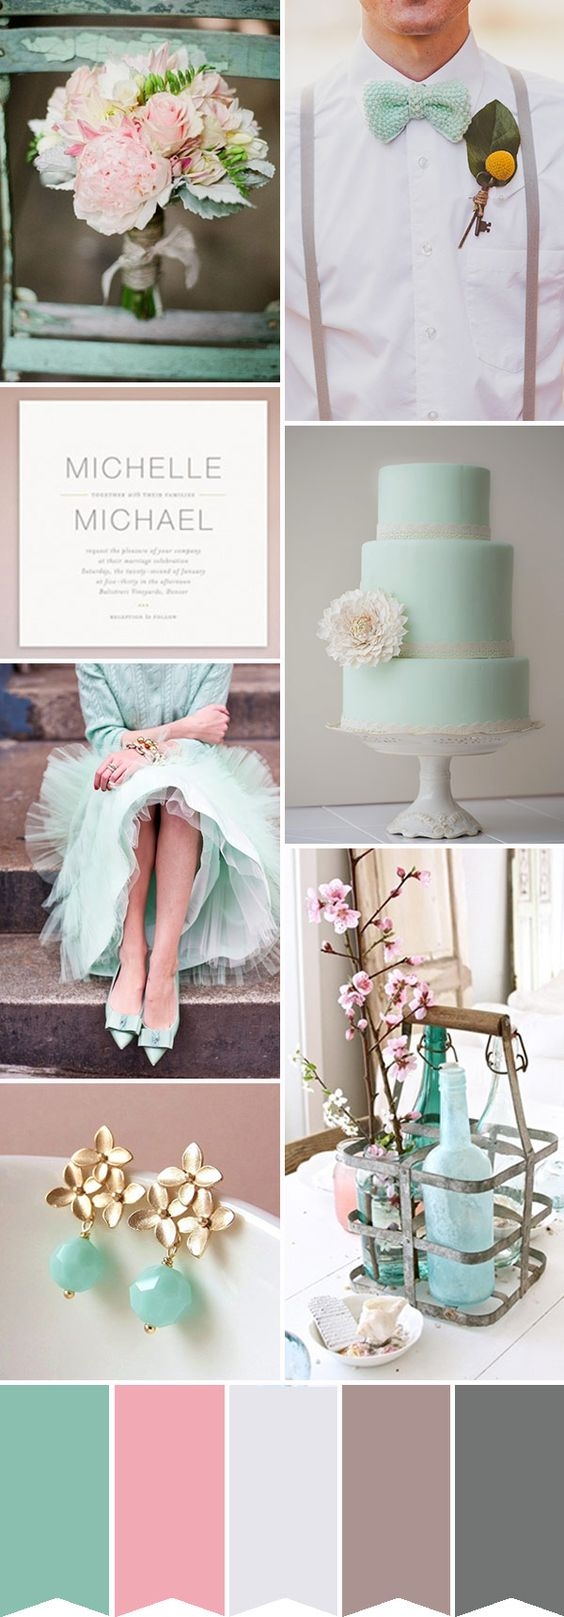 MINT-AND-PINK-WEDDING http://www.onefabday.com. Read More - http://onefabday.com/pink-mint-wedding-colour-palette/